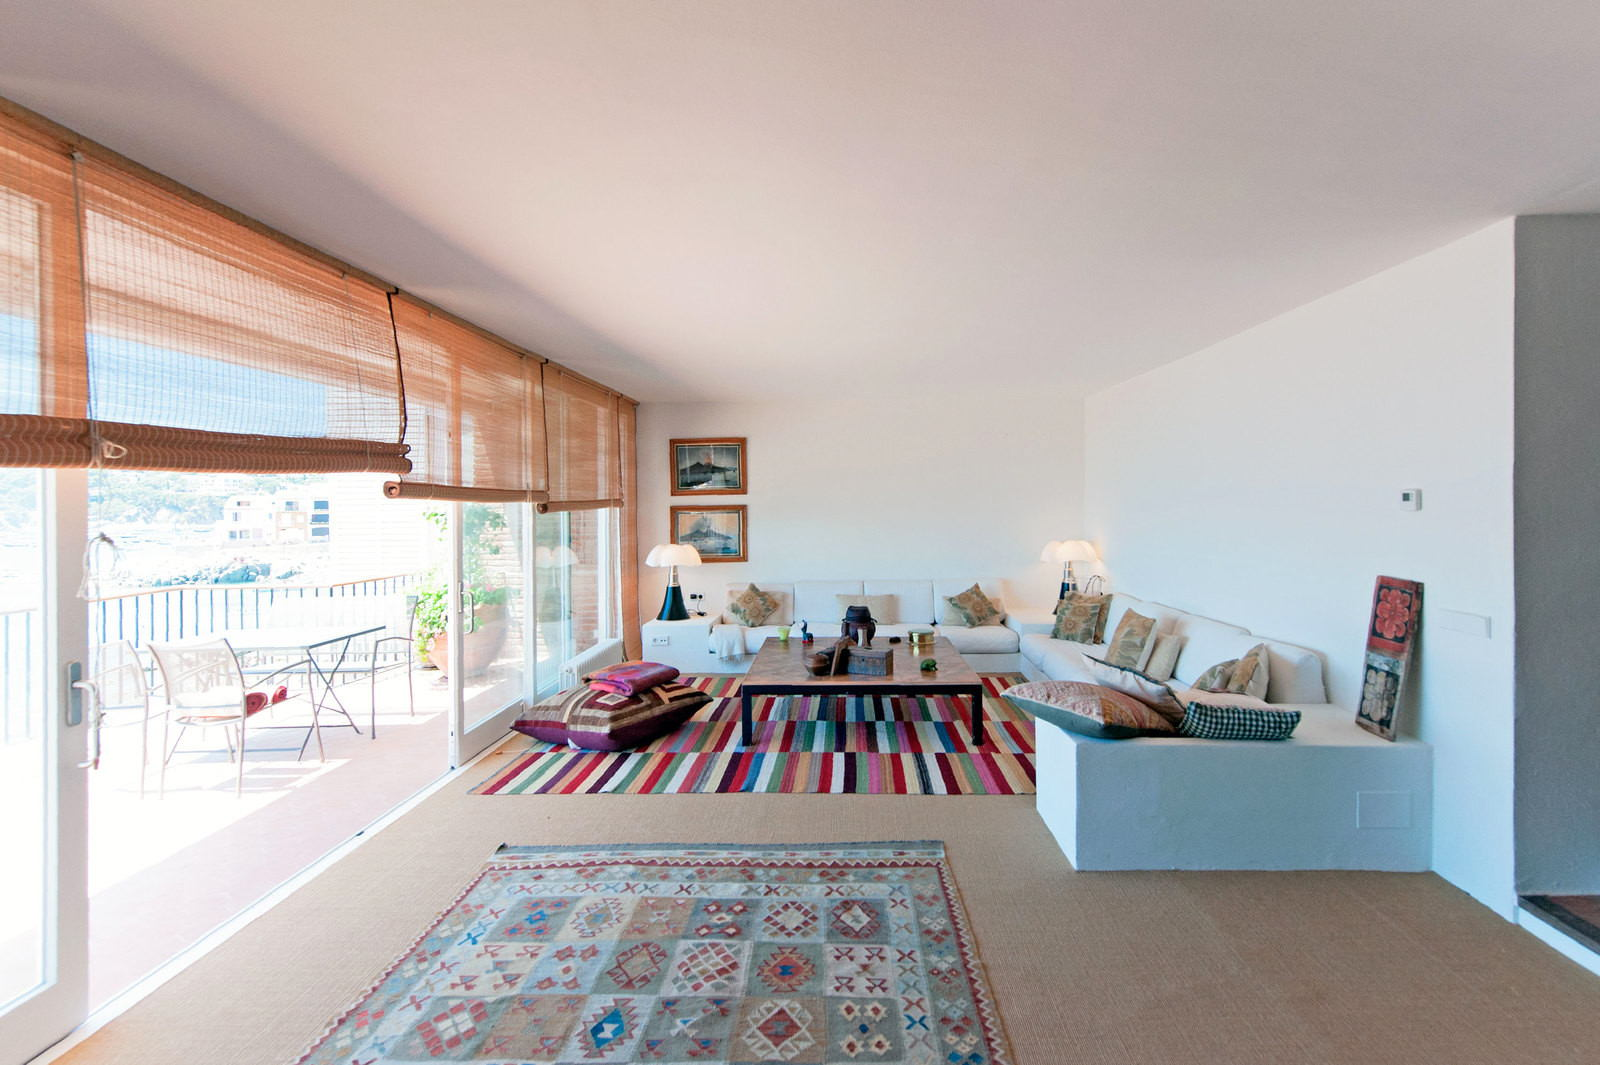 Renovation-of-a-private-house-just3ds.com-10